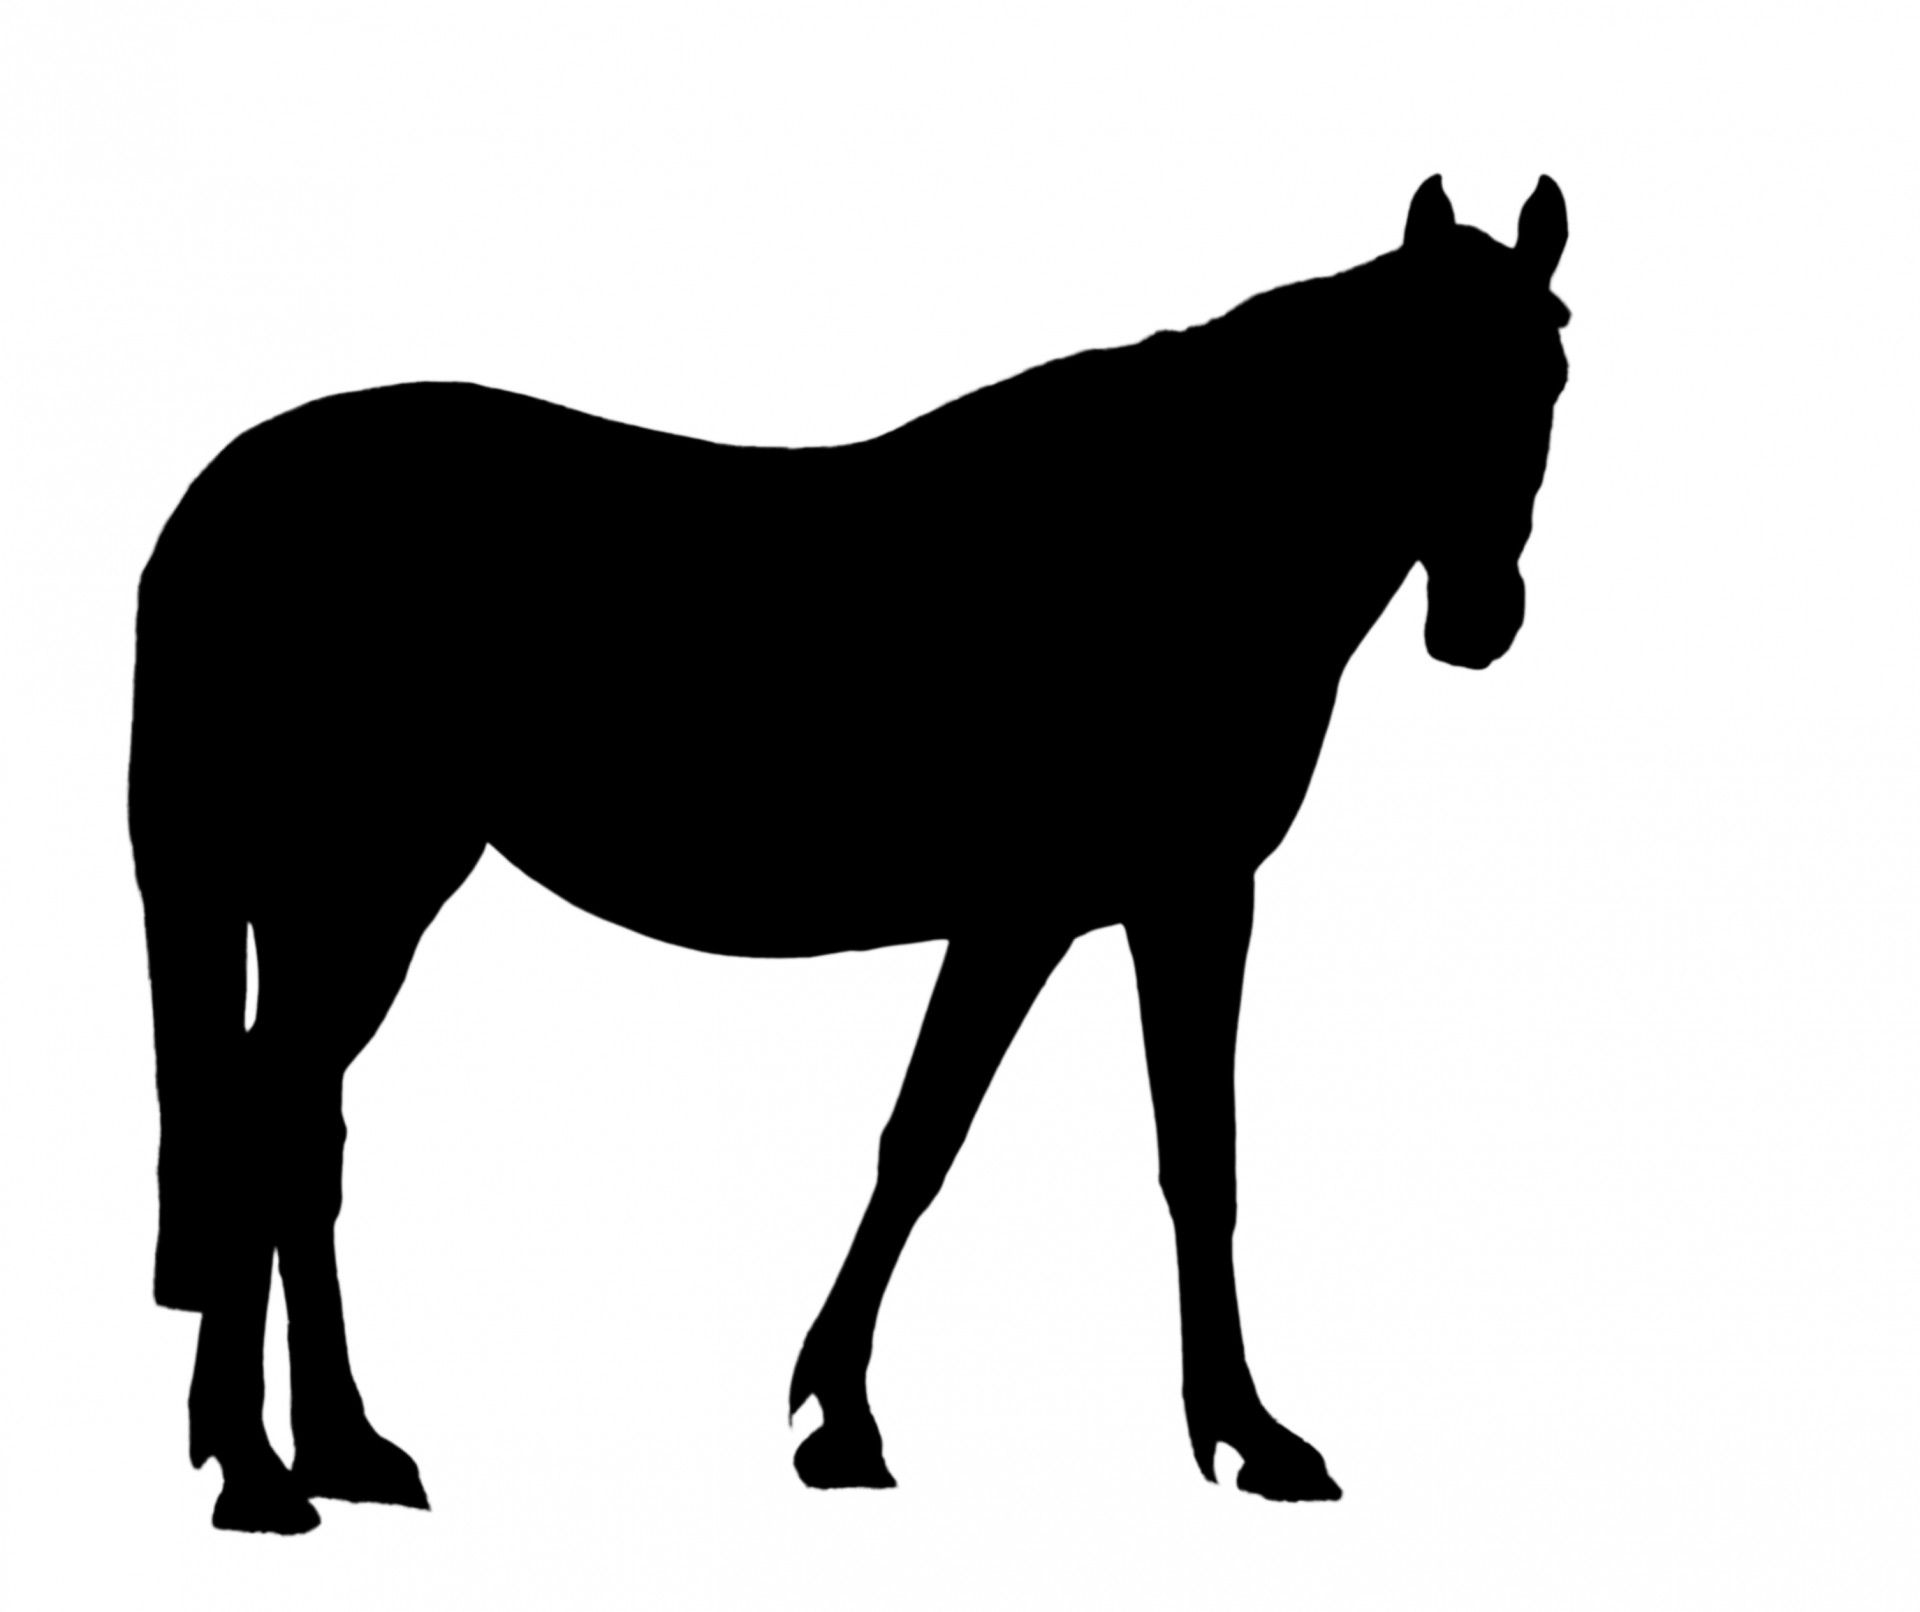 dressage horse silhouette at getdrawings com free for personal use rh getdrawings com clip art horses black and white clip art horseshoe template